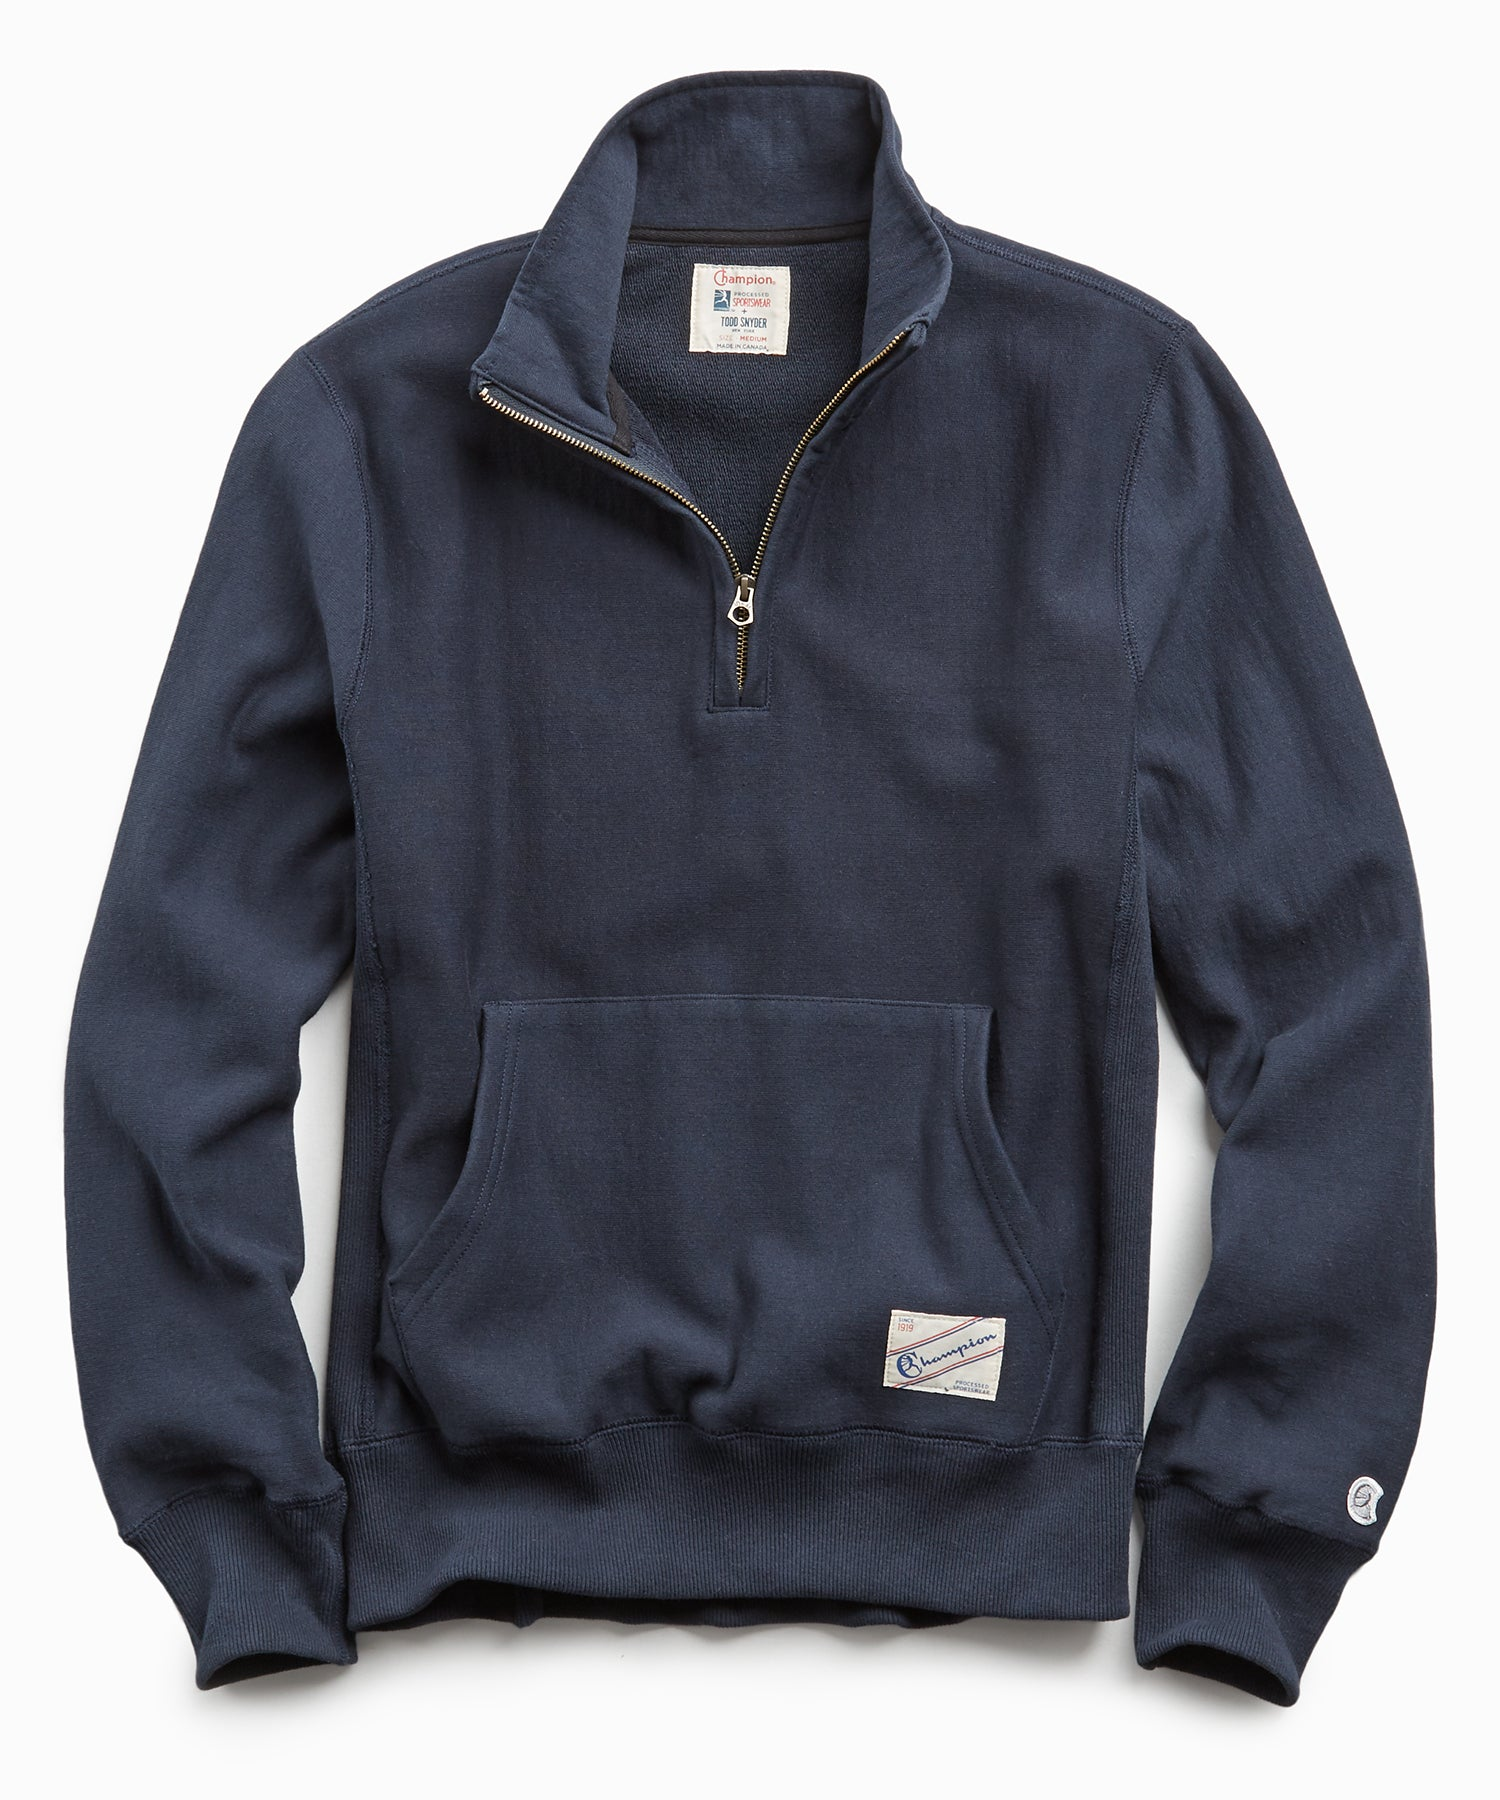 Terry Quarter Zip Reverse Weave Sweatshirt in Navy